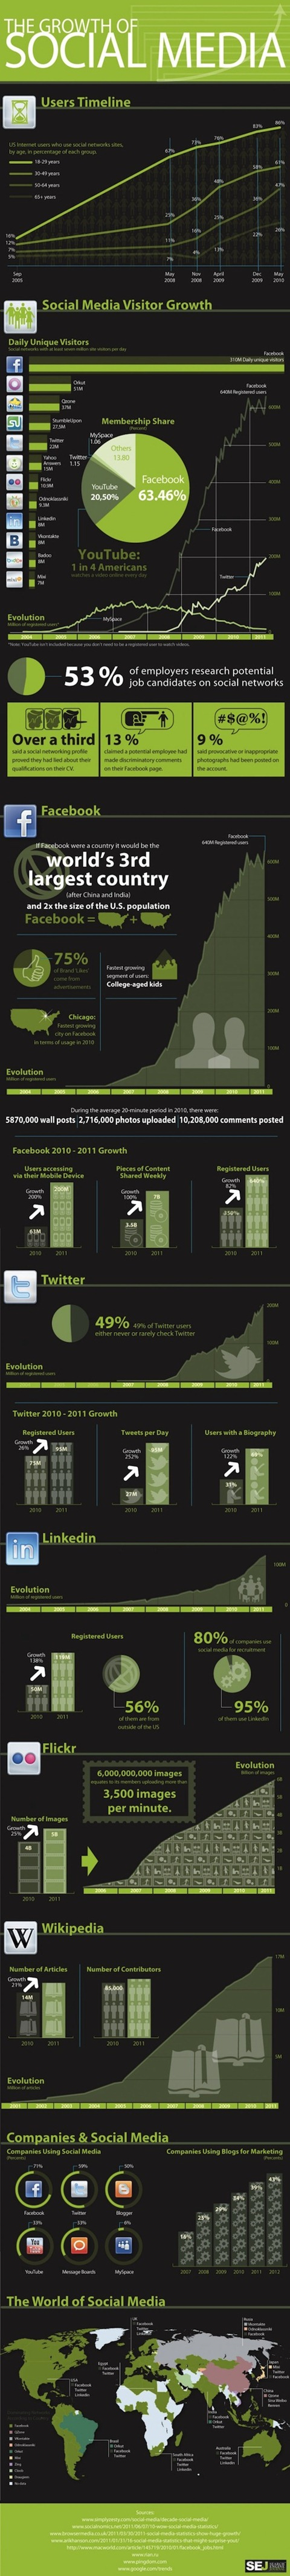 infographic-growthofsocialmedia